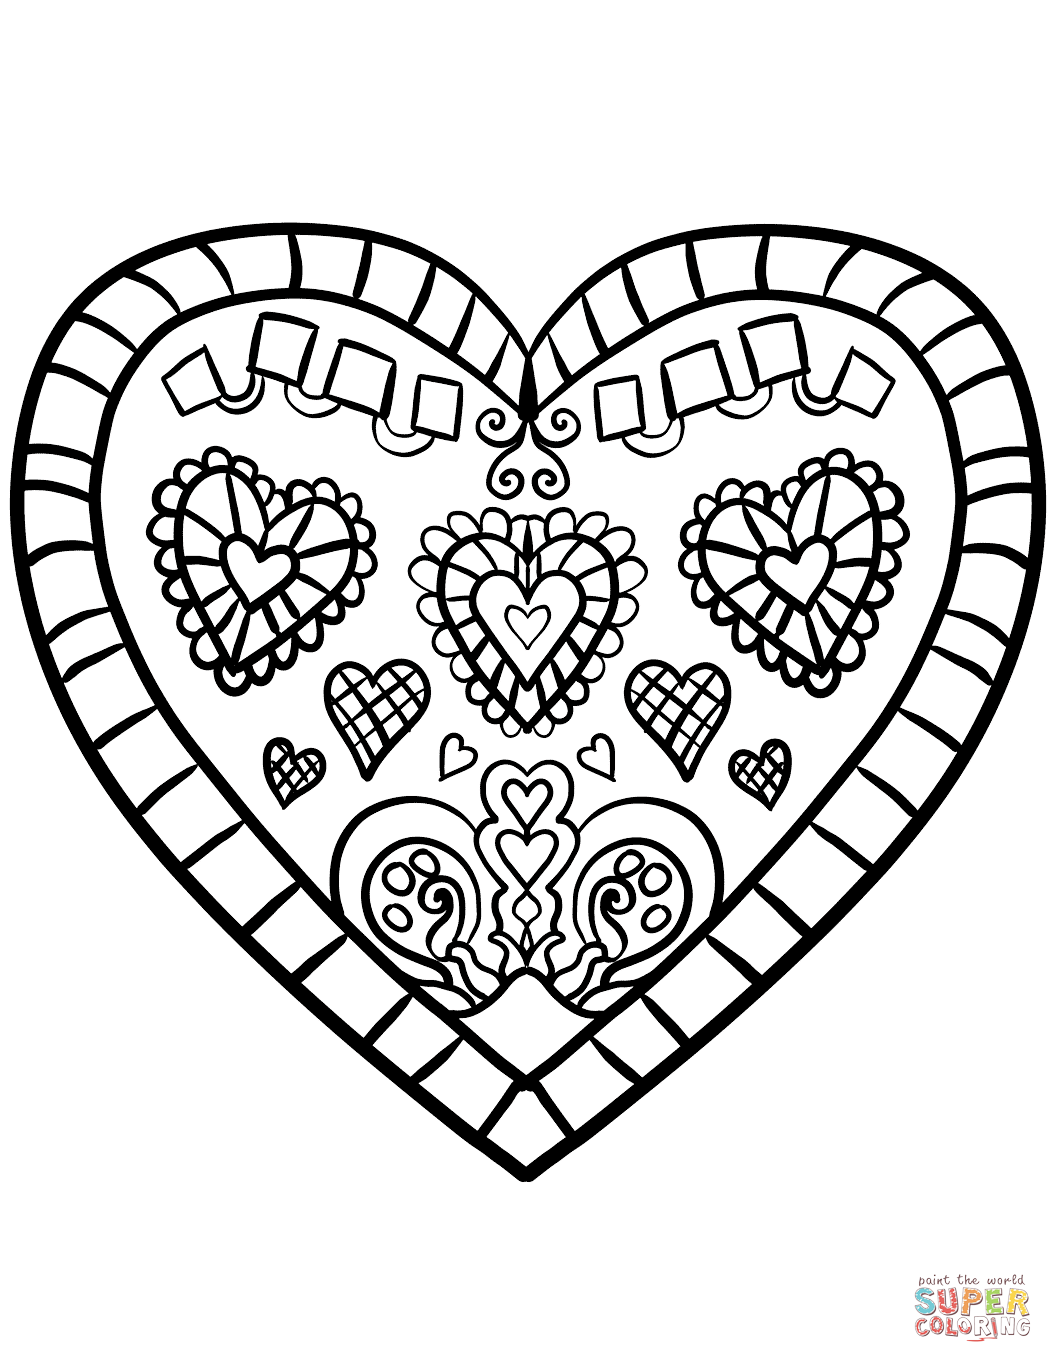 Decorated Heart coloring page.